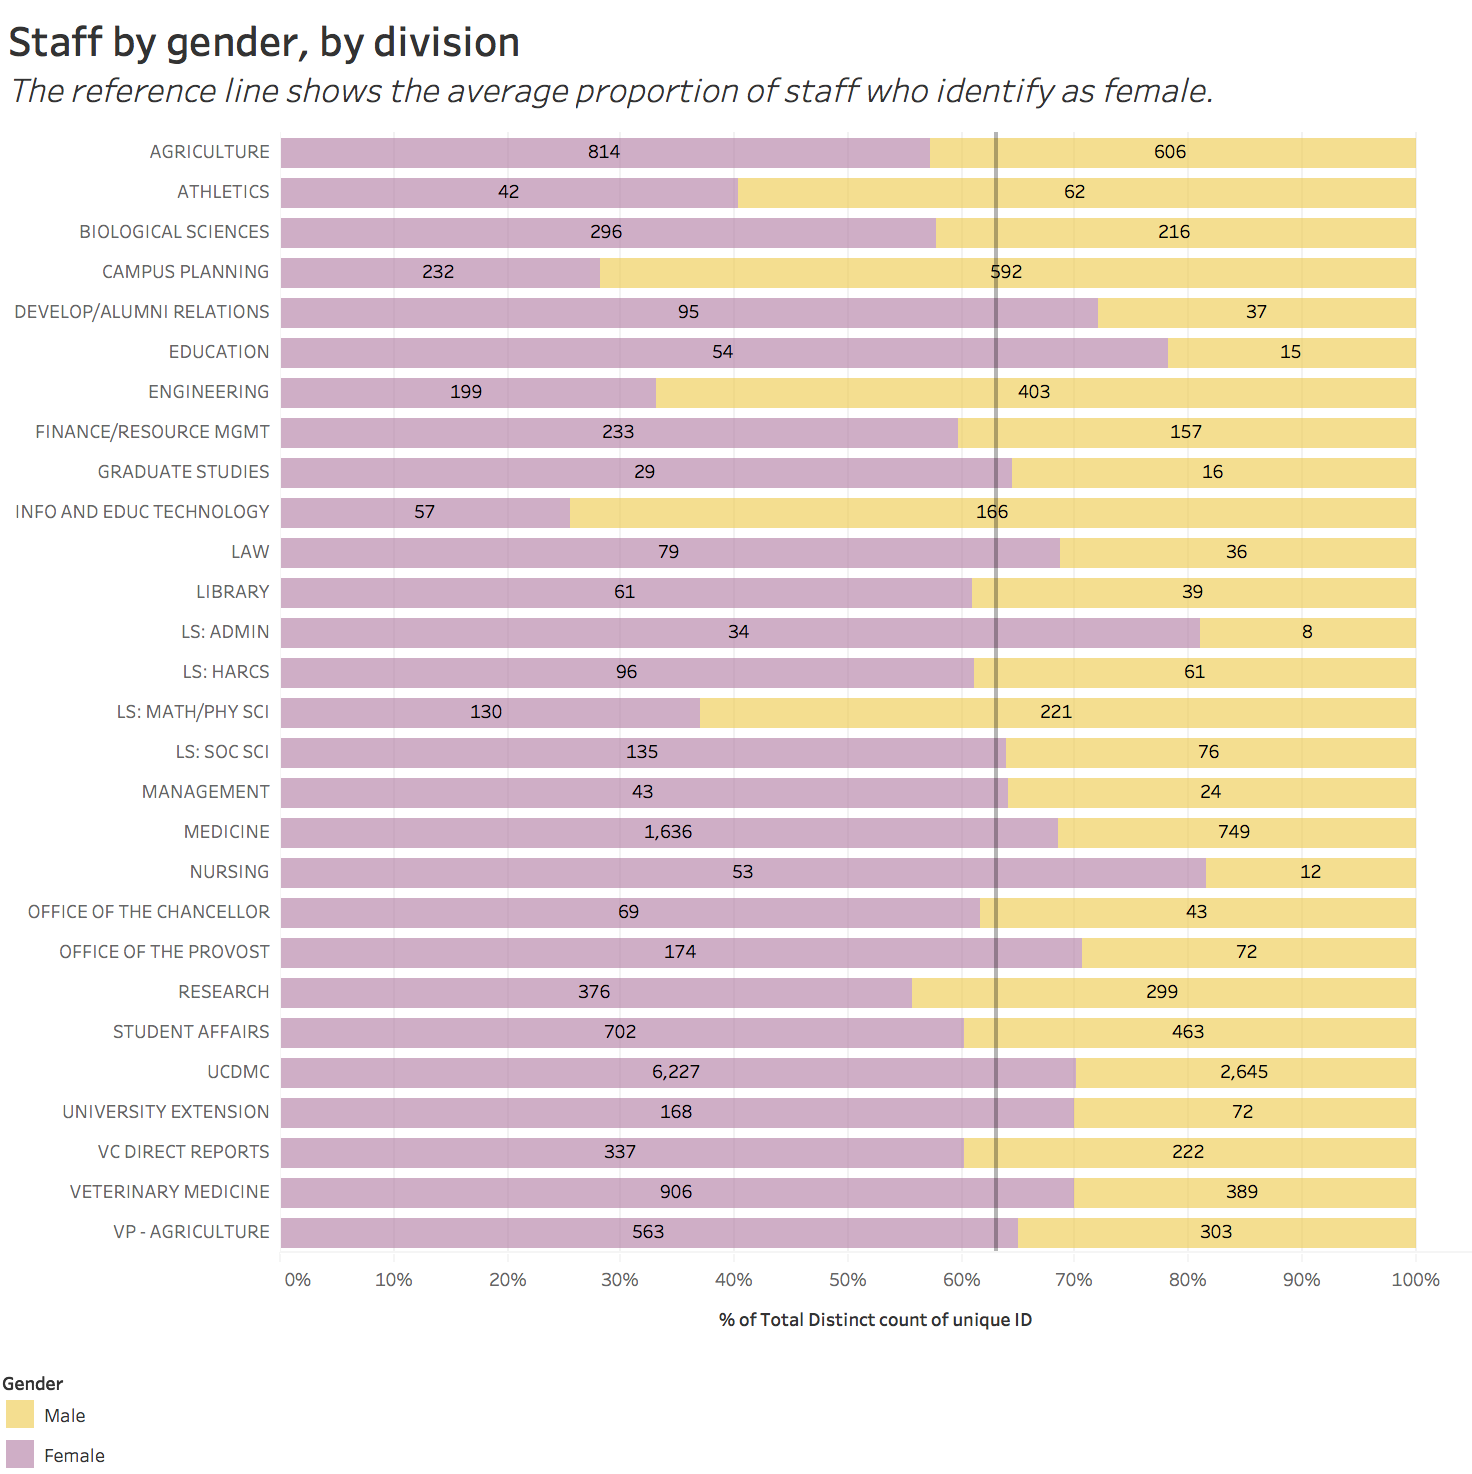 staff by gender, by division